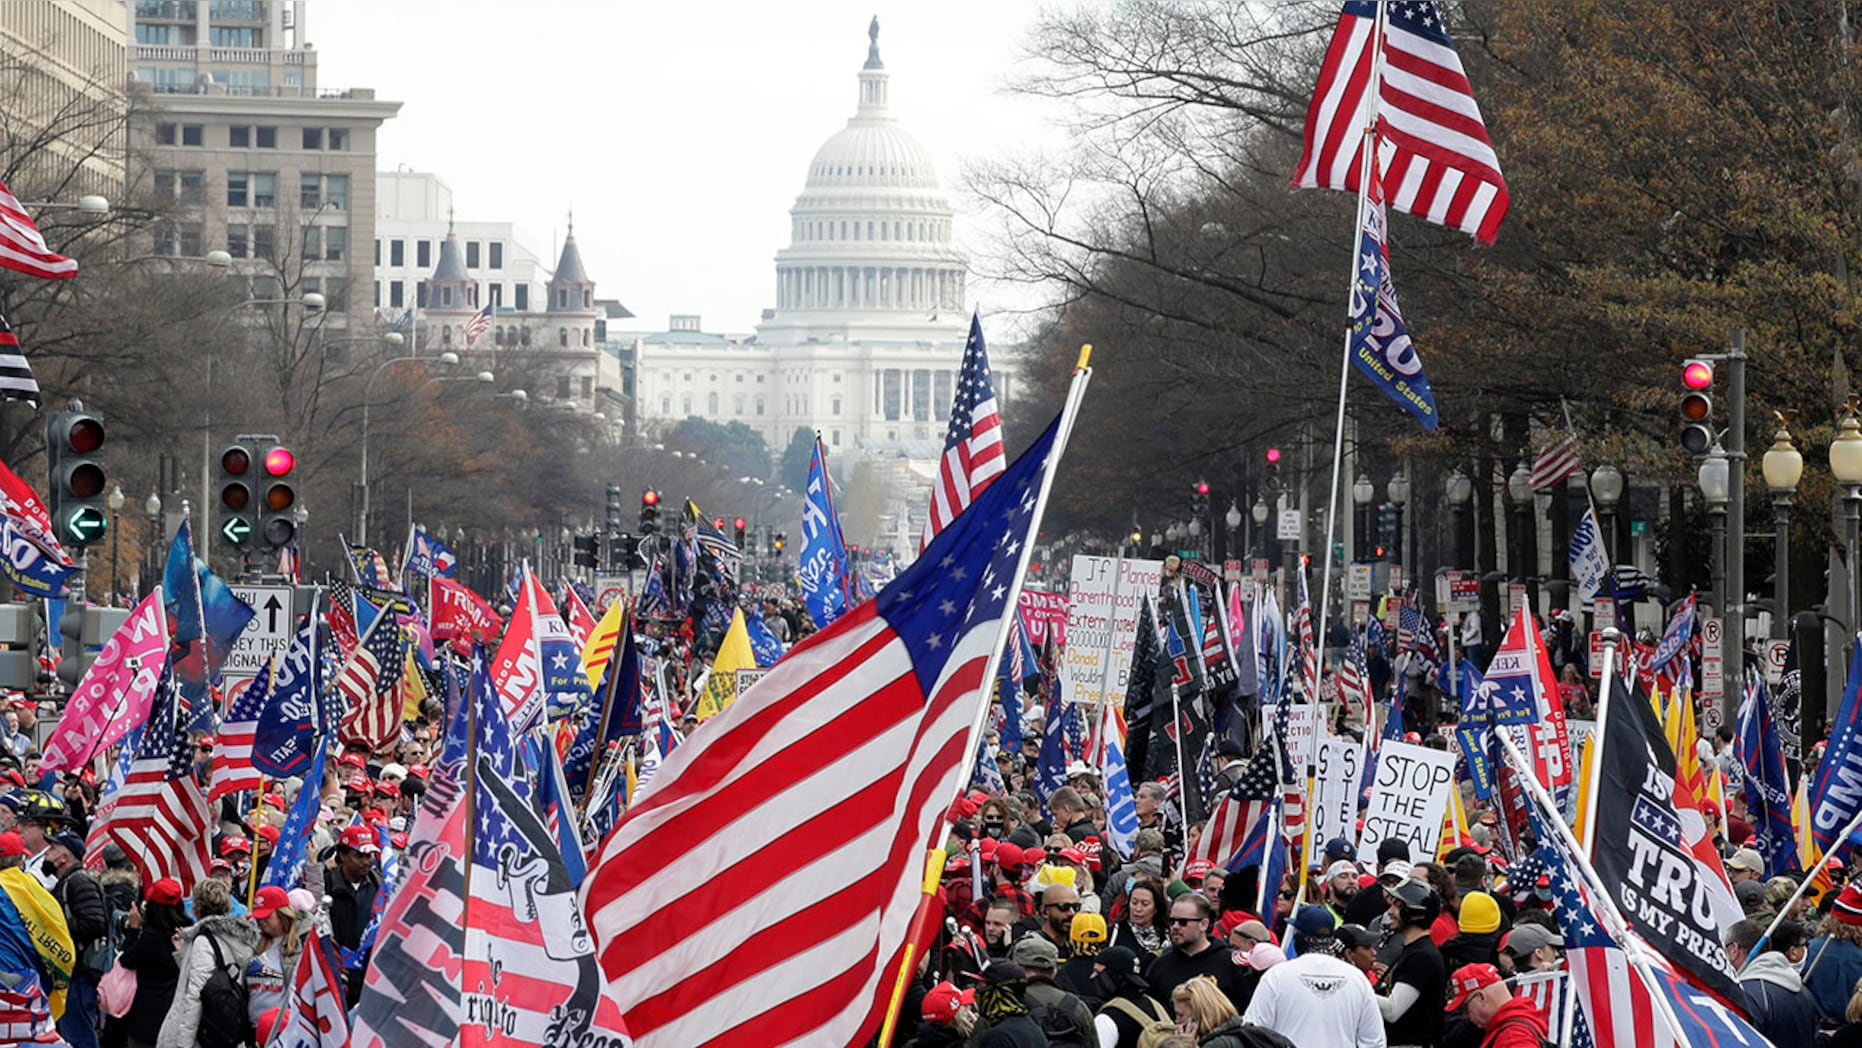 Mayhem in Washington, DC, as Trump supporters, opponents clash; at least 4 stabbed, 23 arrested